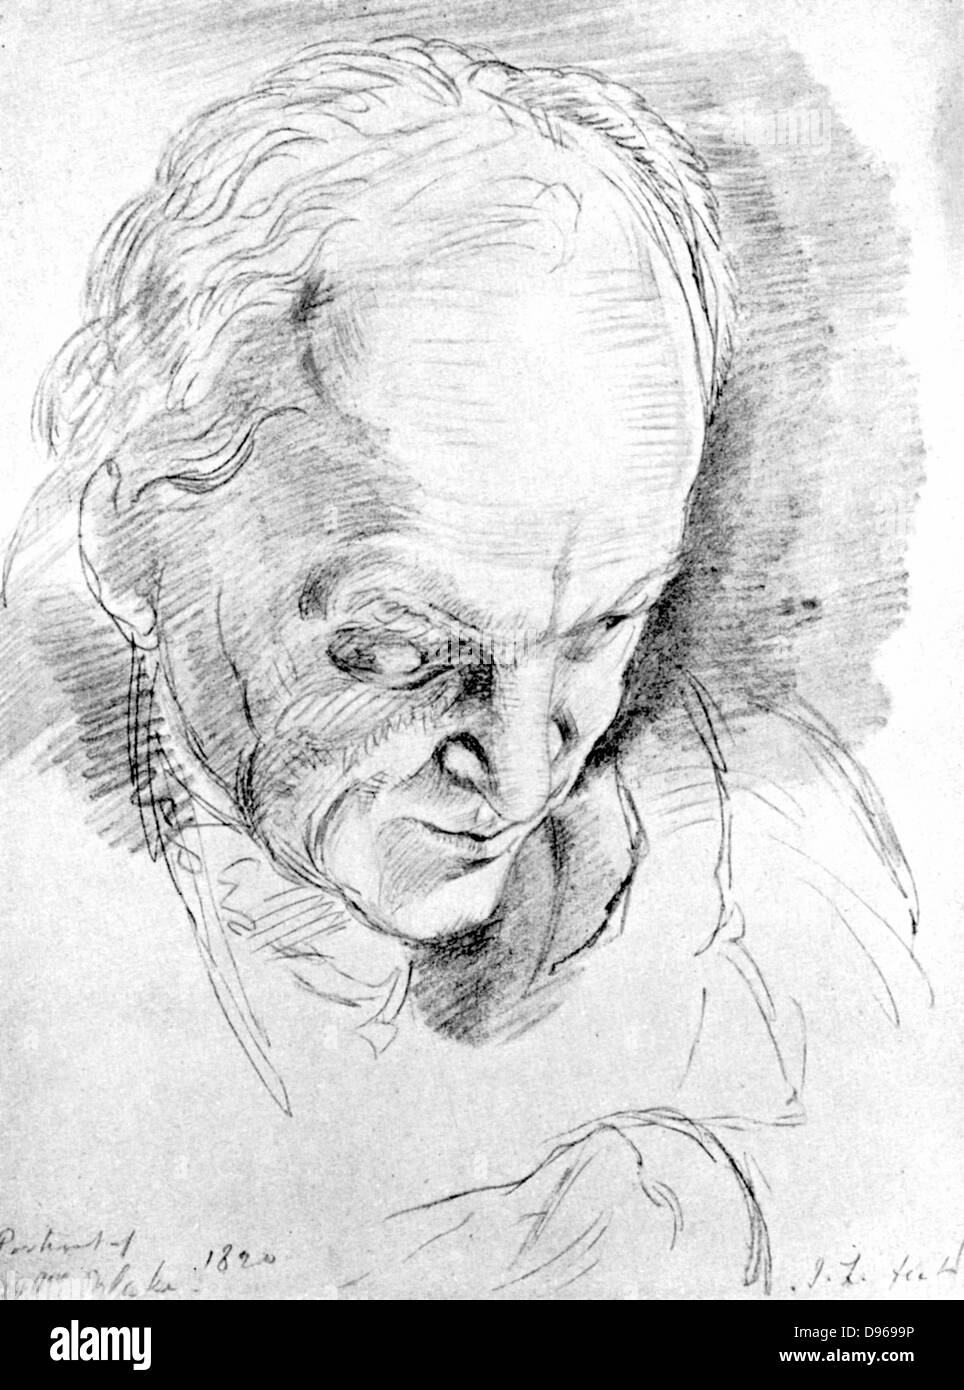 William Blake (1757-1827) in 1824 English mystic, poet, painter and engraver - Stock Image